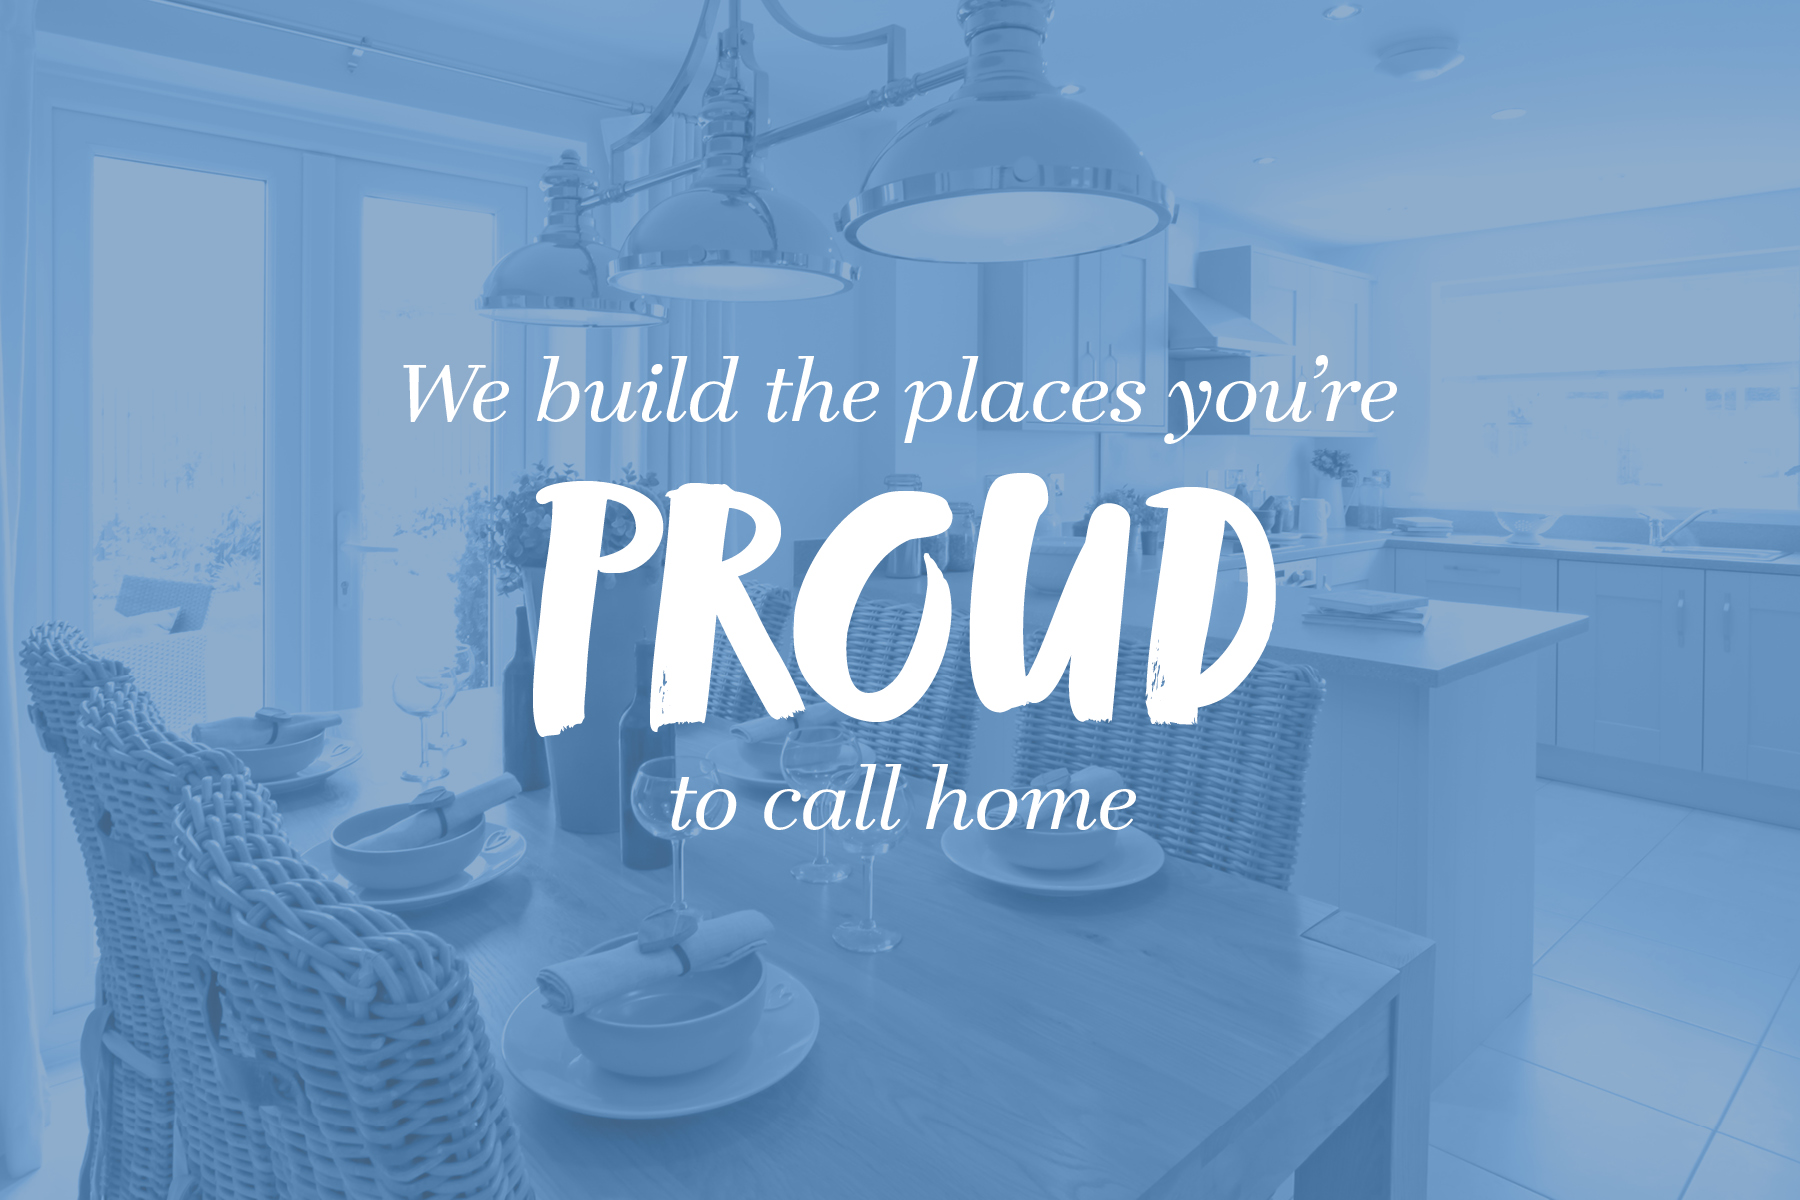 50628_TWWM_-_Proud_Carousel_Graphic_1800x1200